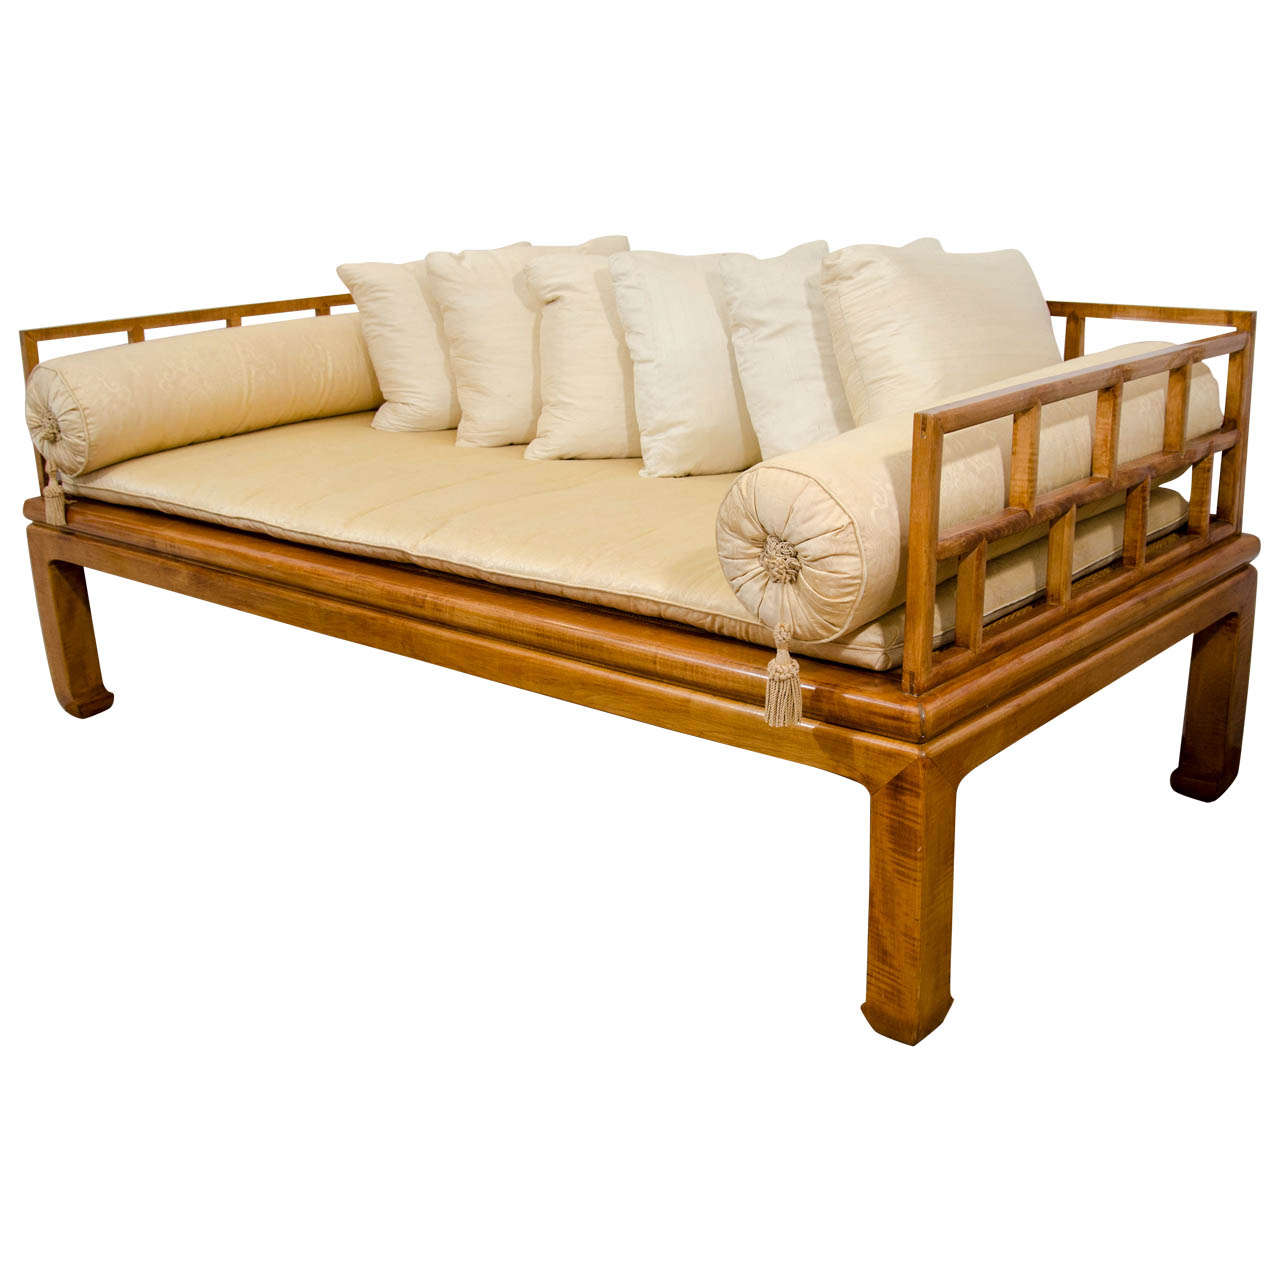 mid century daybed in the style of baker furniture far